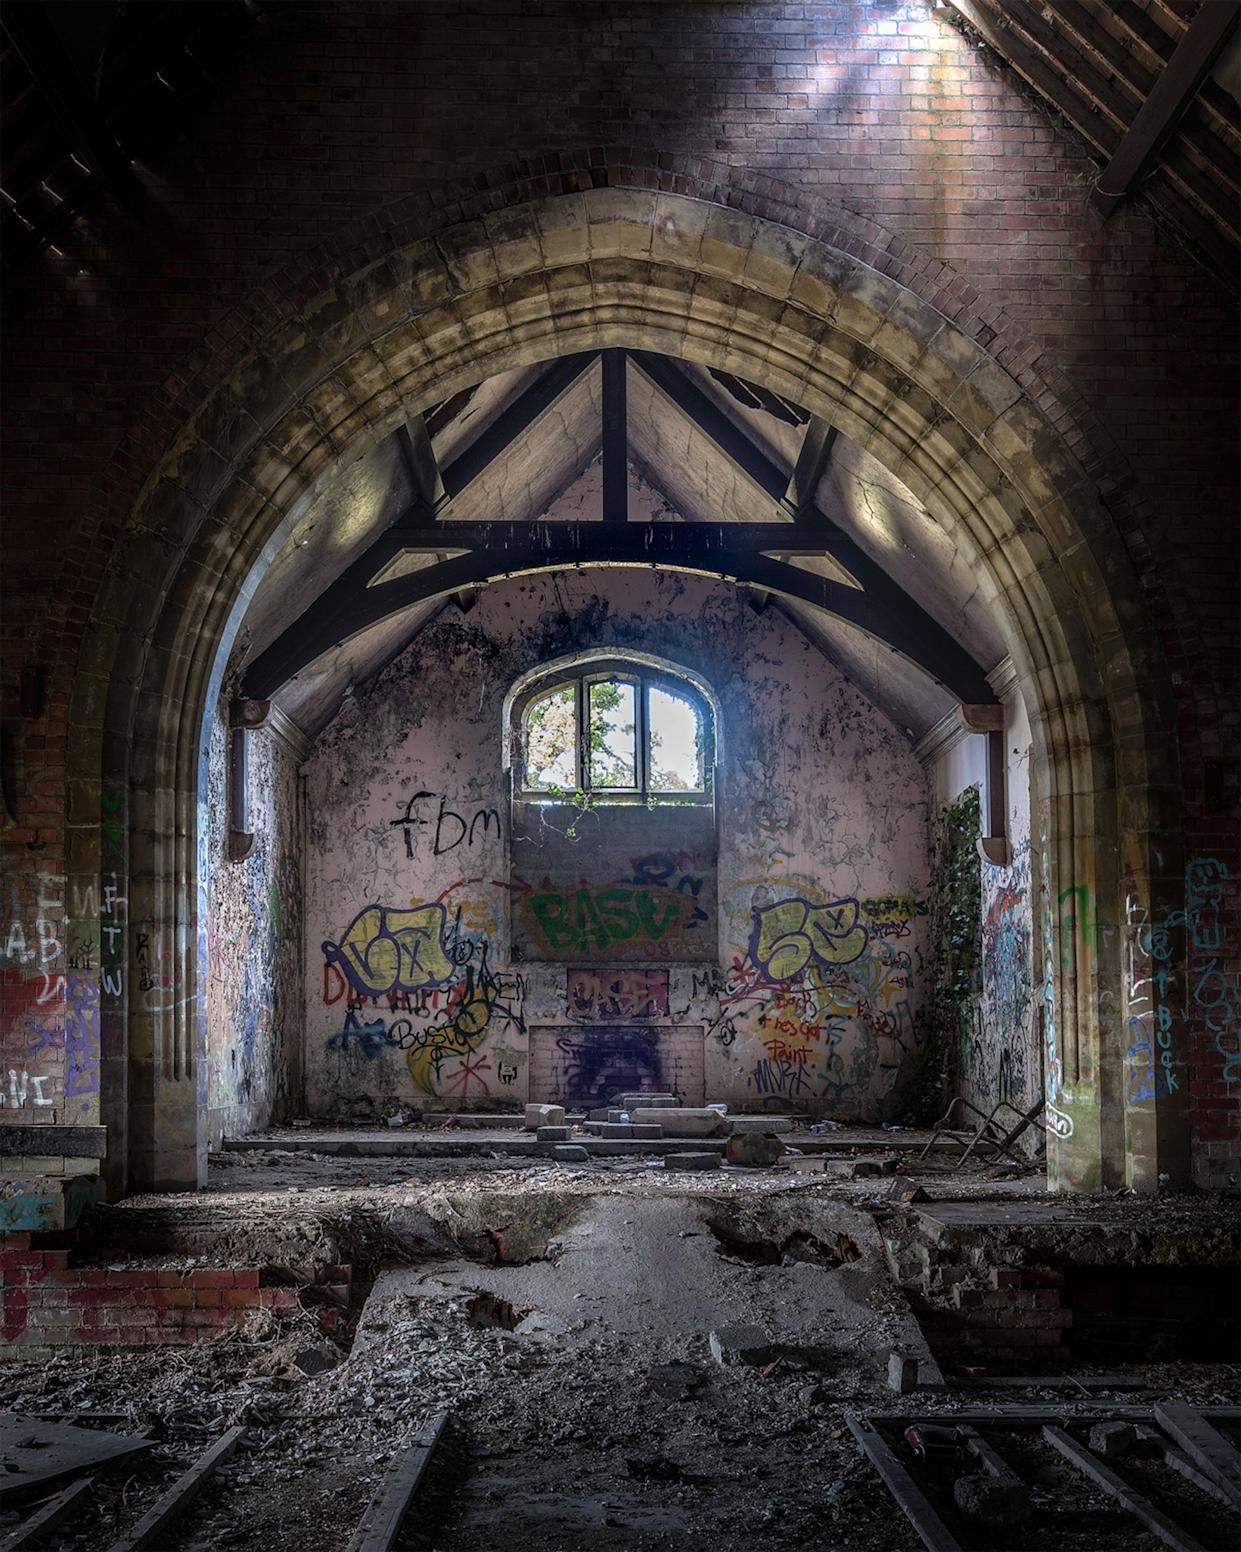 Graffiti and rubble inside an abandoned church in Northern Ireland, March 12, 2018. (Photo: Unseen Decay/Mercury Press/Caters News)